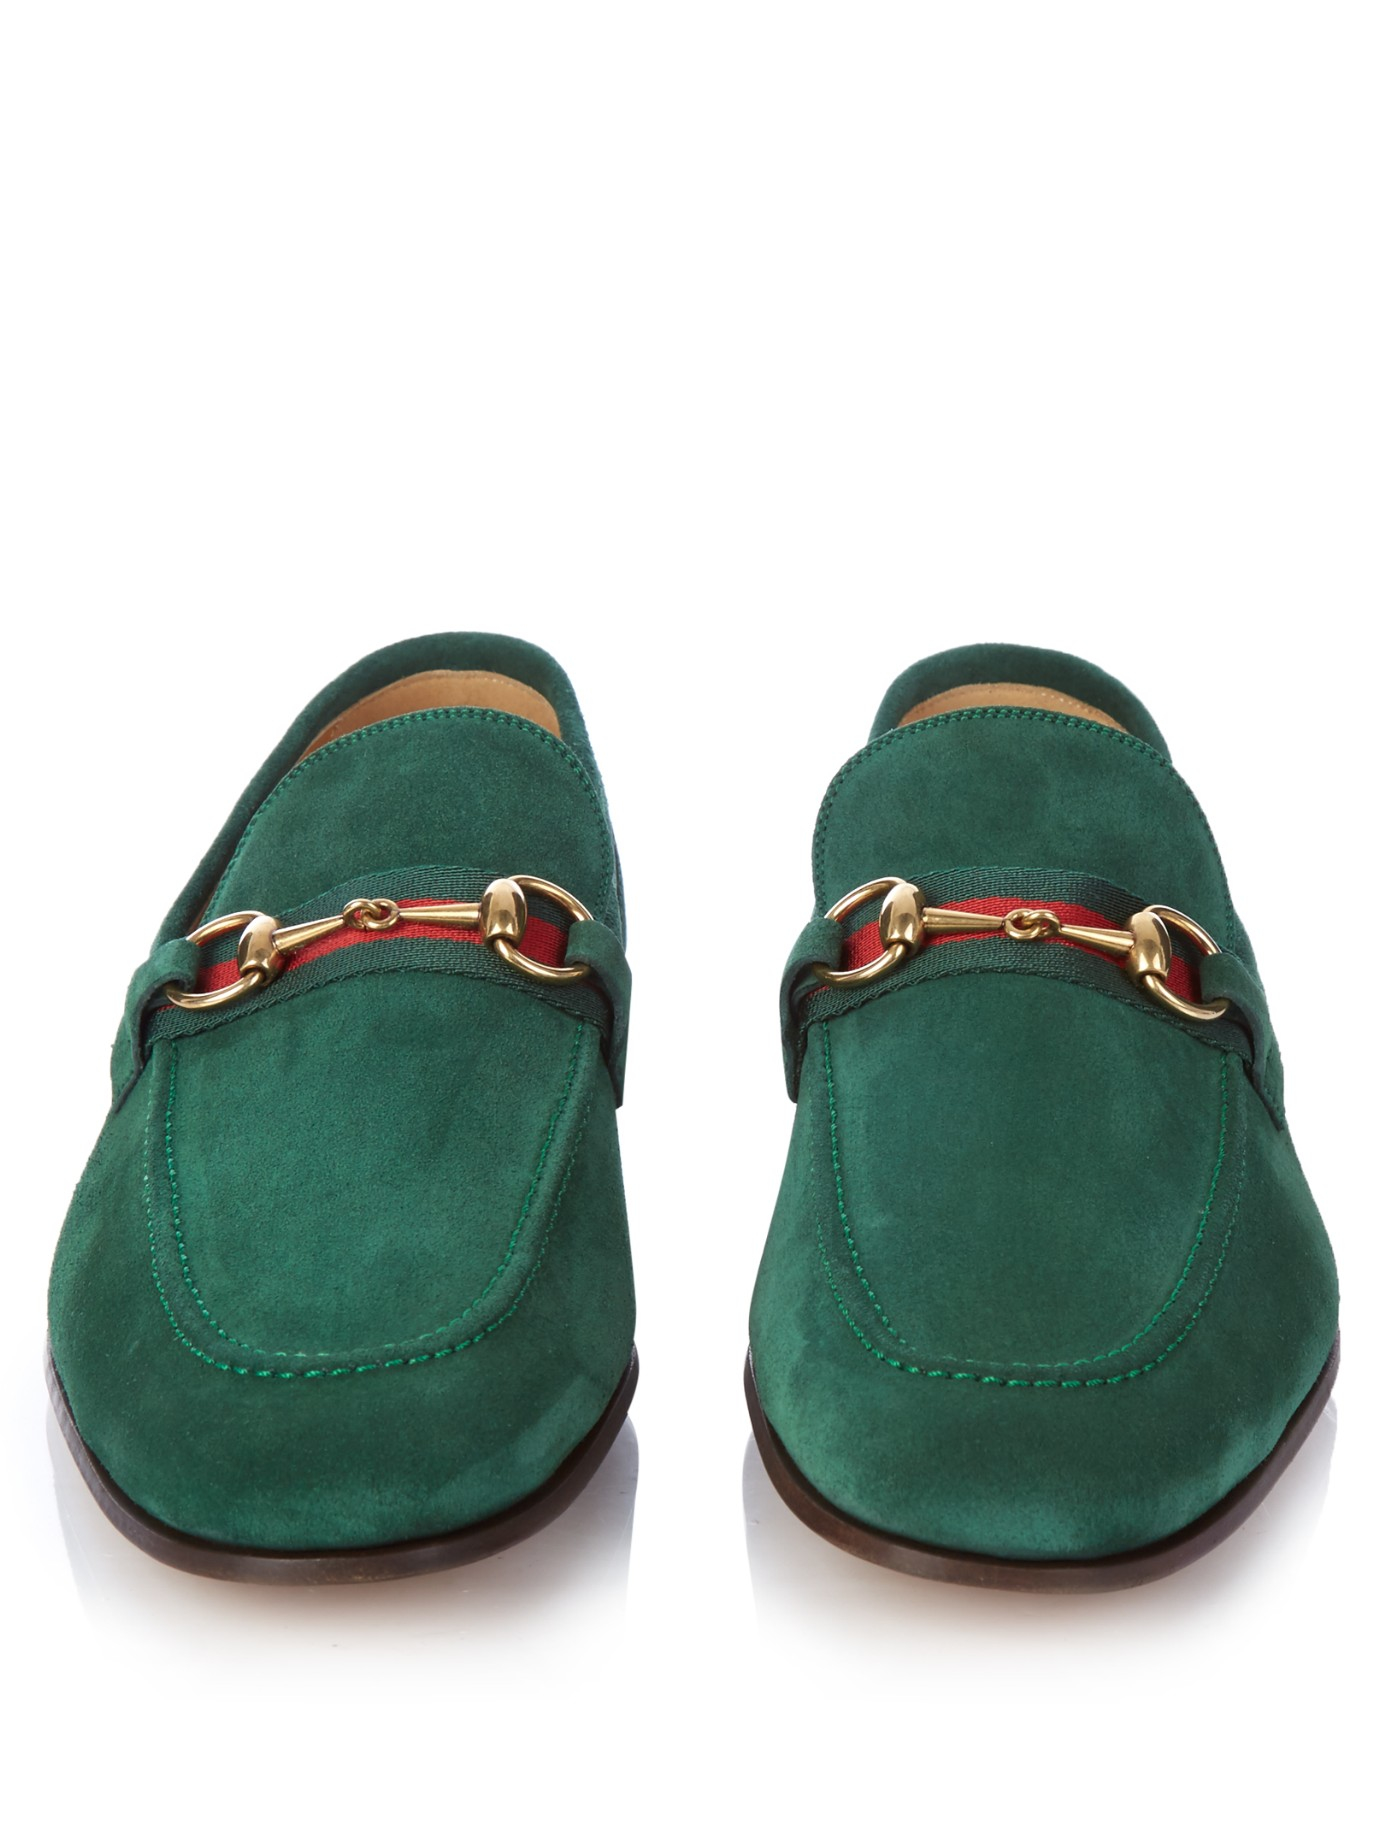 gucci horsebit suede loafers in green for men lyst. Black Bedroom Furniture Sets. Home Design Ideas